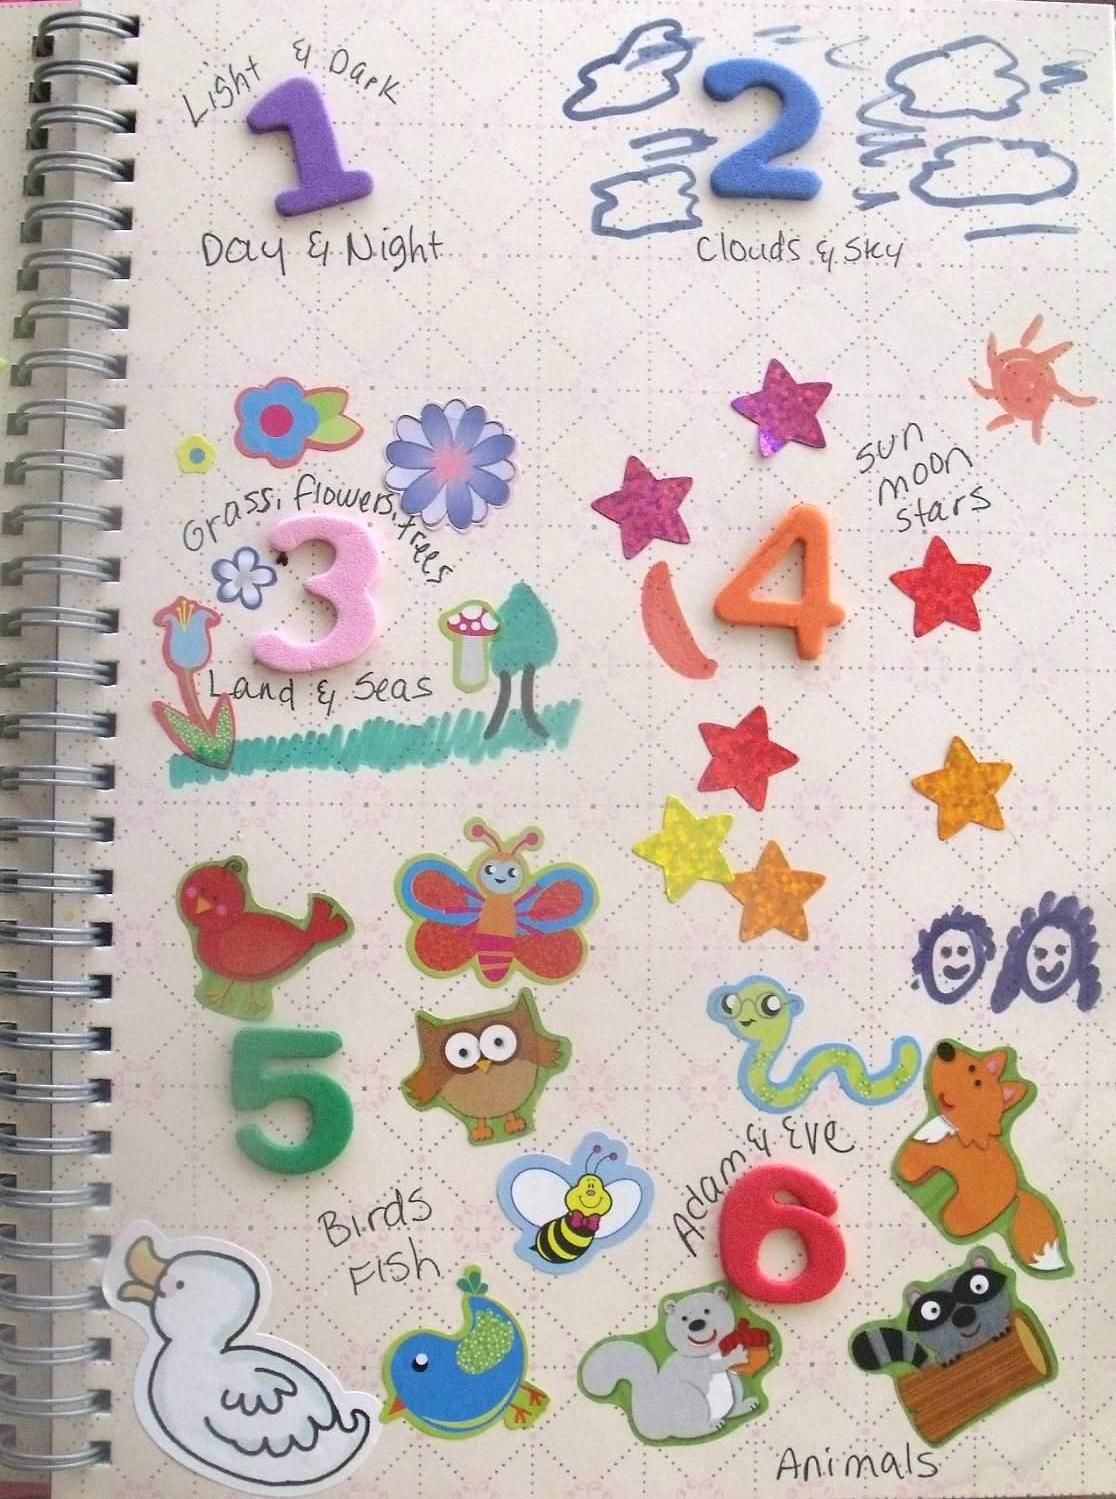 7 Days Of Creation Lesson Ideas From Bible Fun For Kids Maybe Have A Page For Each Day And Hang